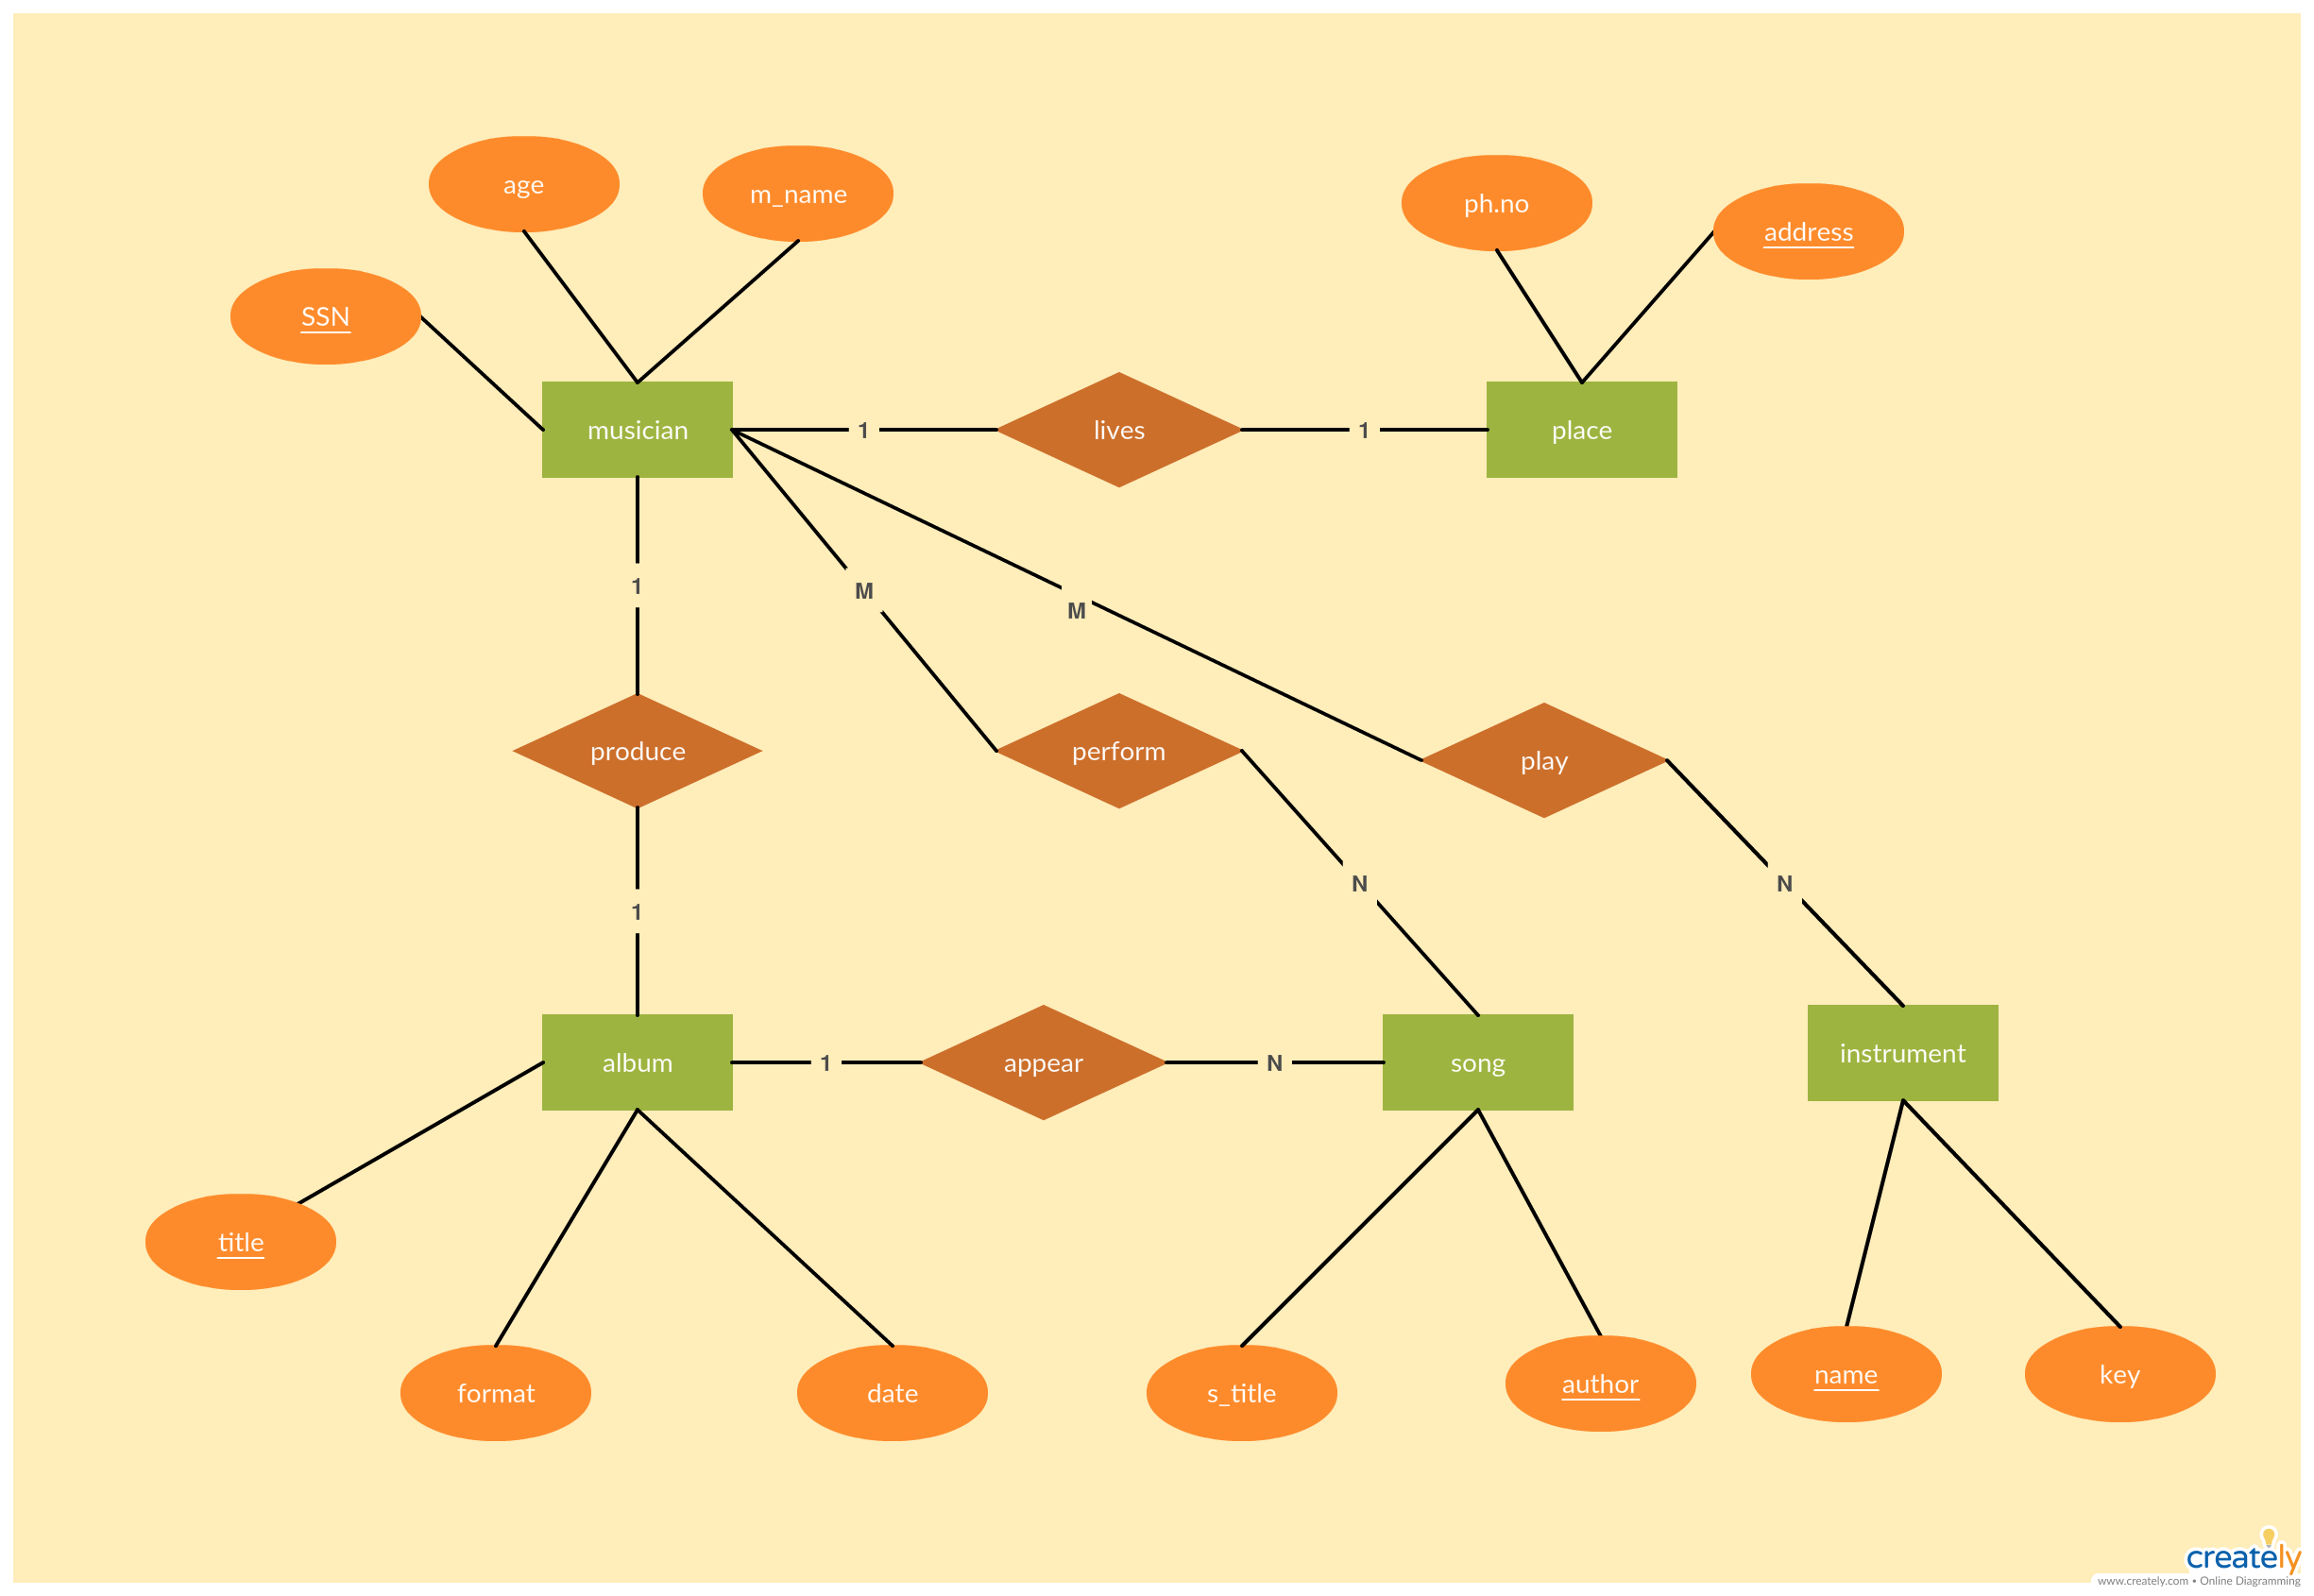 musician record entity relationship diagram example click the image to get all the important aspects [ 2450 x 1690 Pixel ]